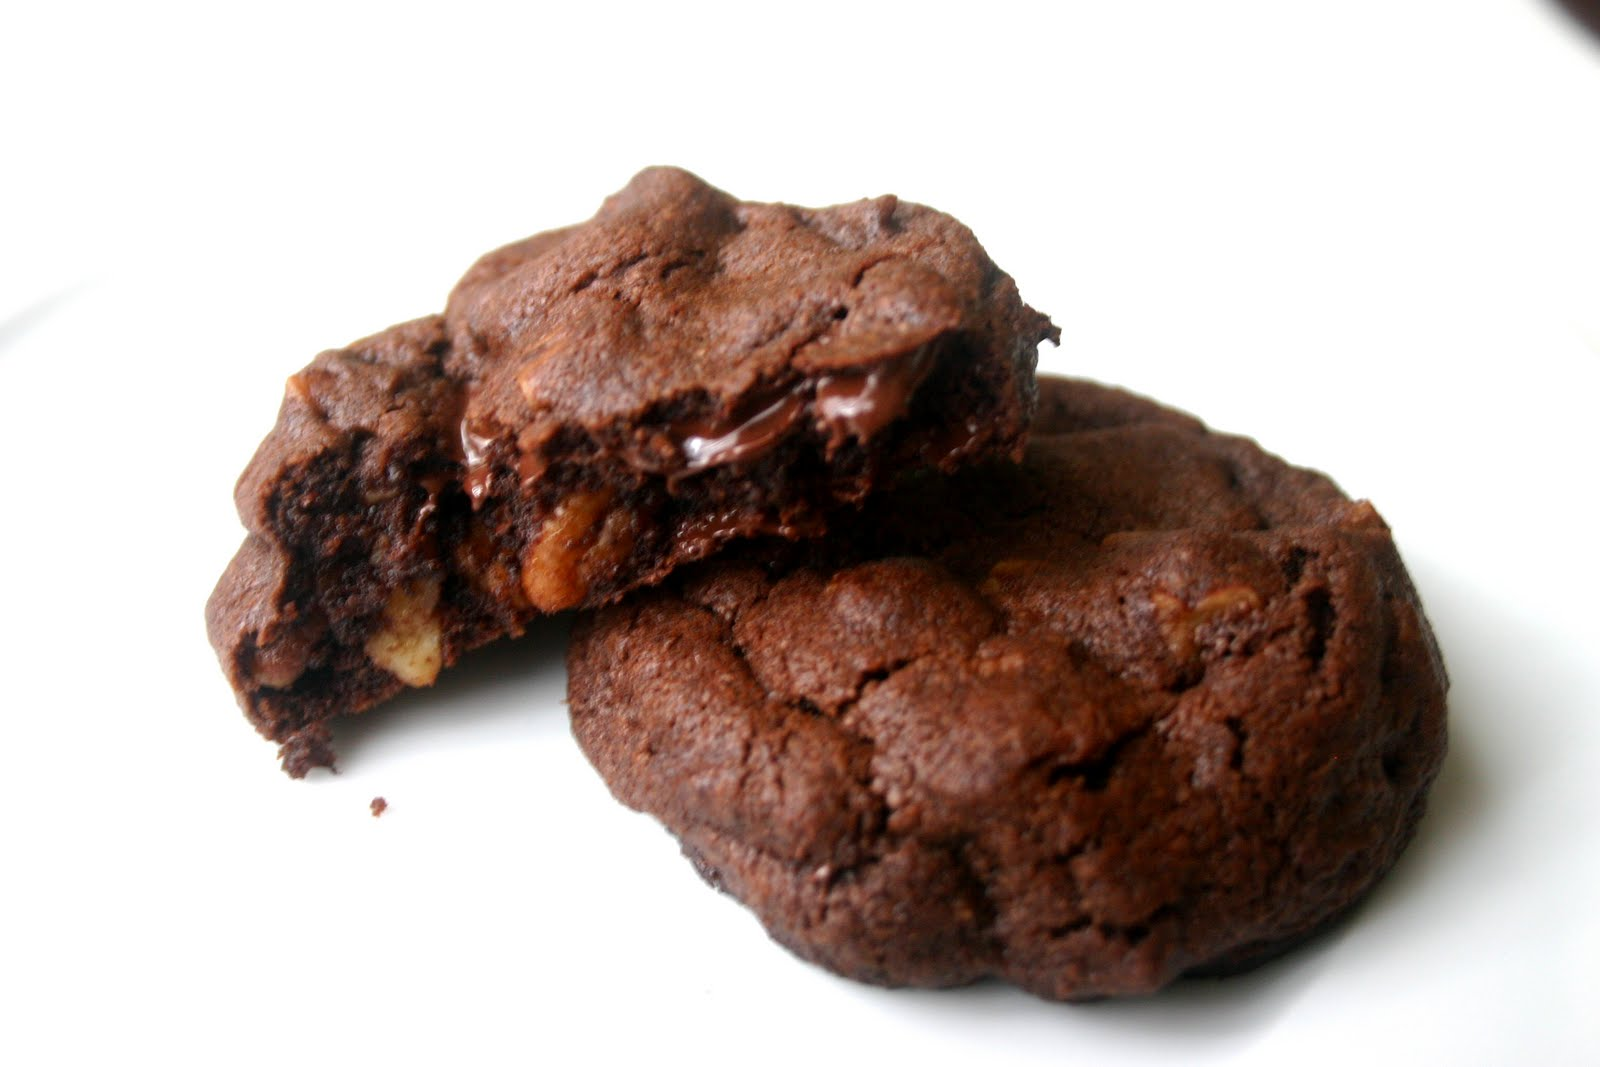 Nuts about food: Double chocolate chip cookies